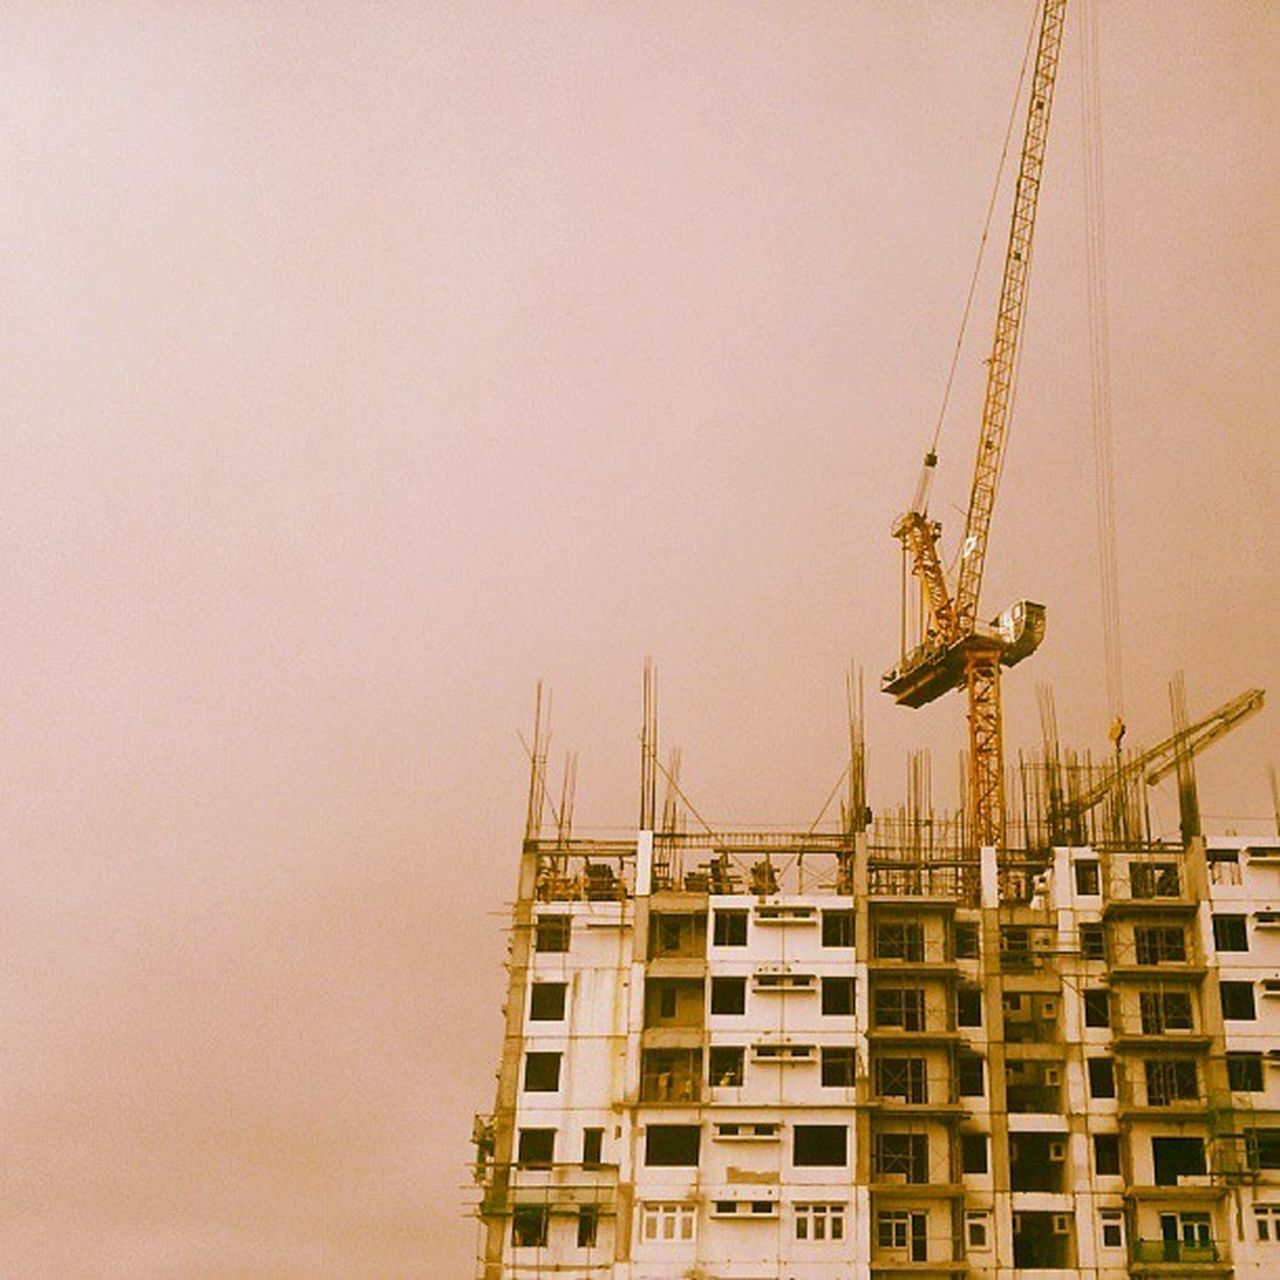 architecture, construction site, development, construction, built structure, crane - construction machinery, building exterior, copy space, building - activity, crane, progress, no people, construction machinery, industry, city, low angle view, clear sky, outdoors, sky, cityscape, day